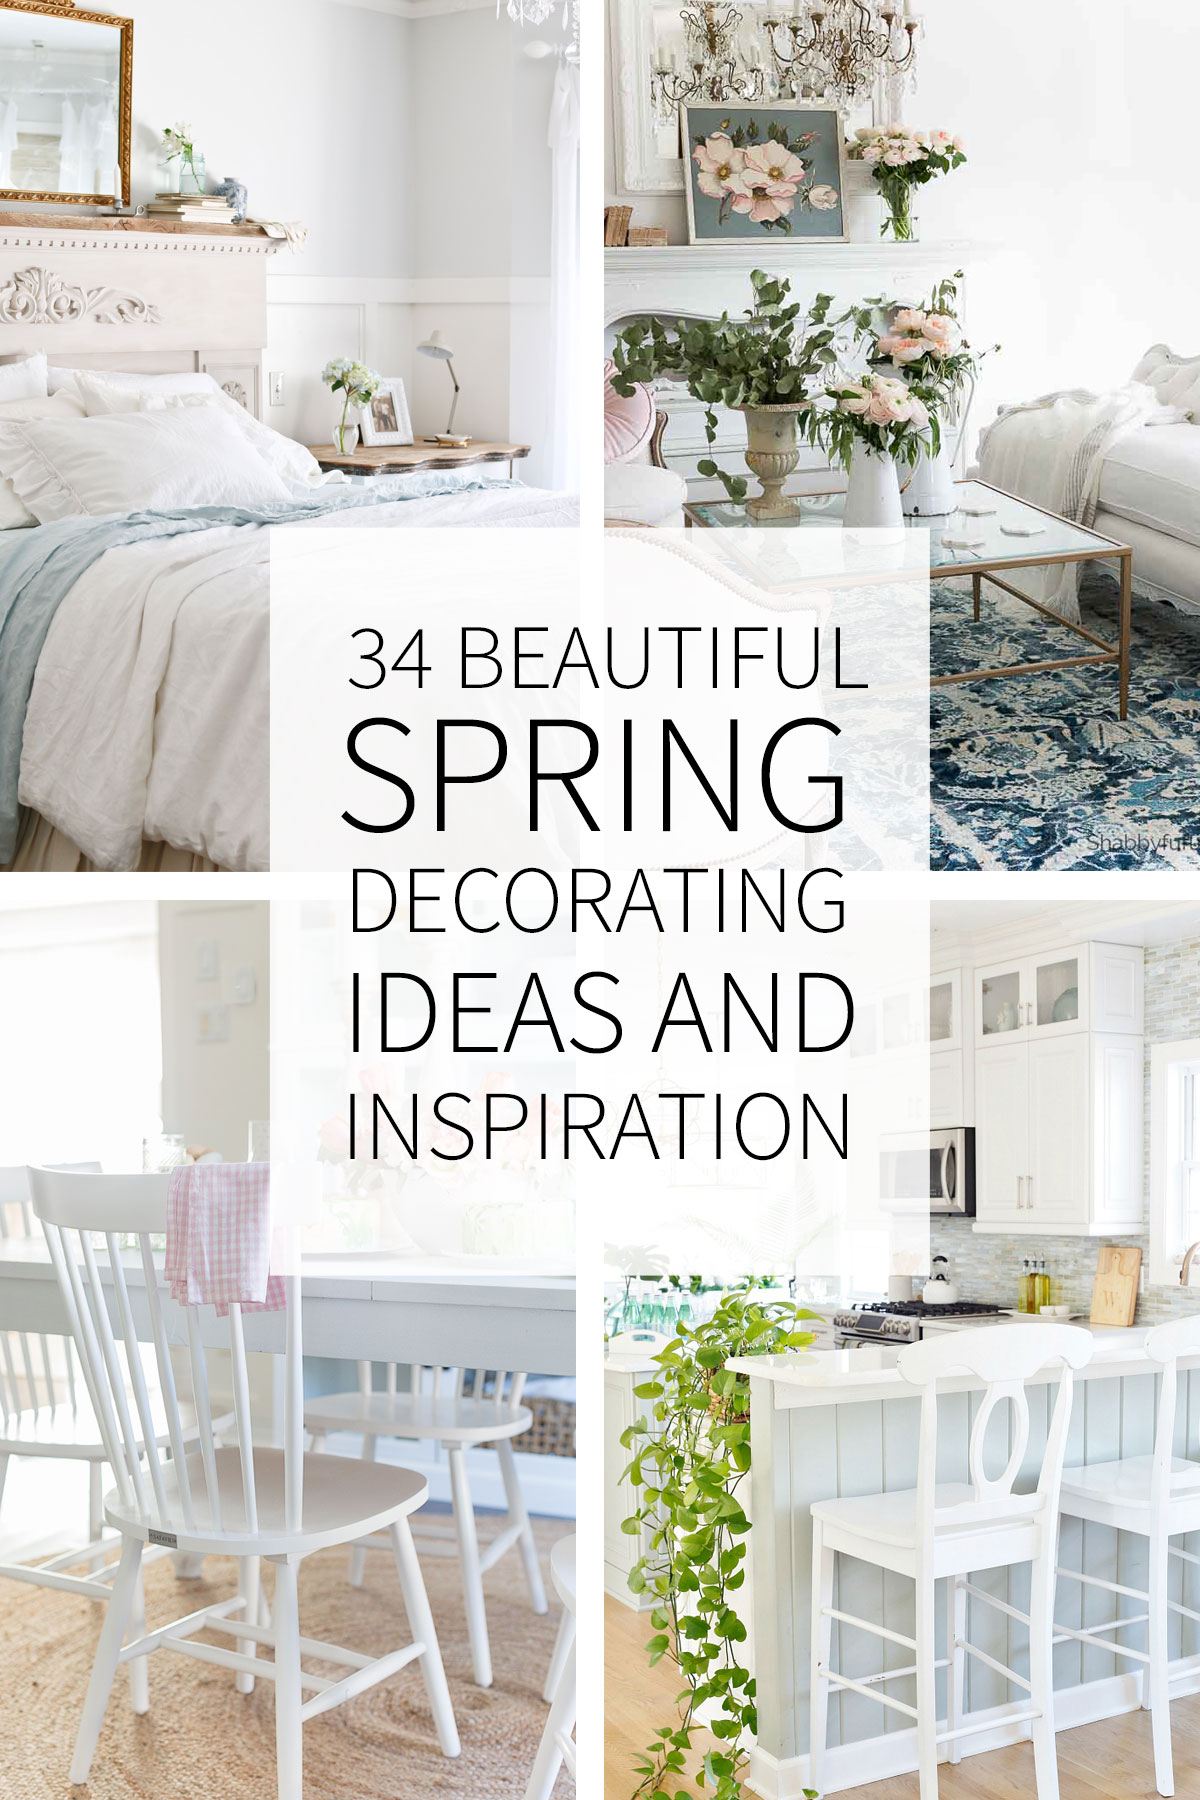 Spring Decorating Ideas: 34 Inspiring And Beautiful Spring Decorating Ideas